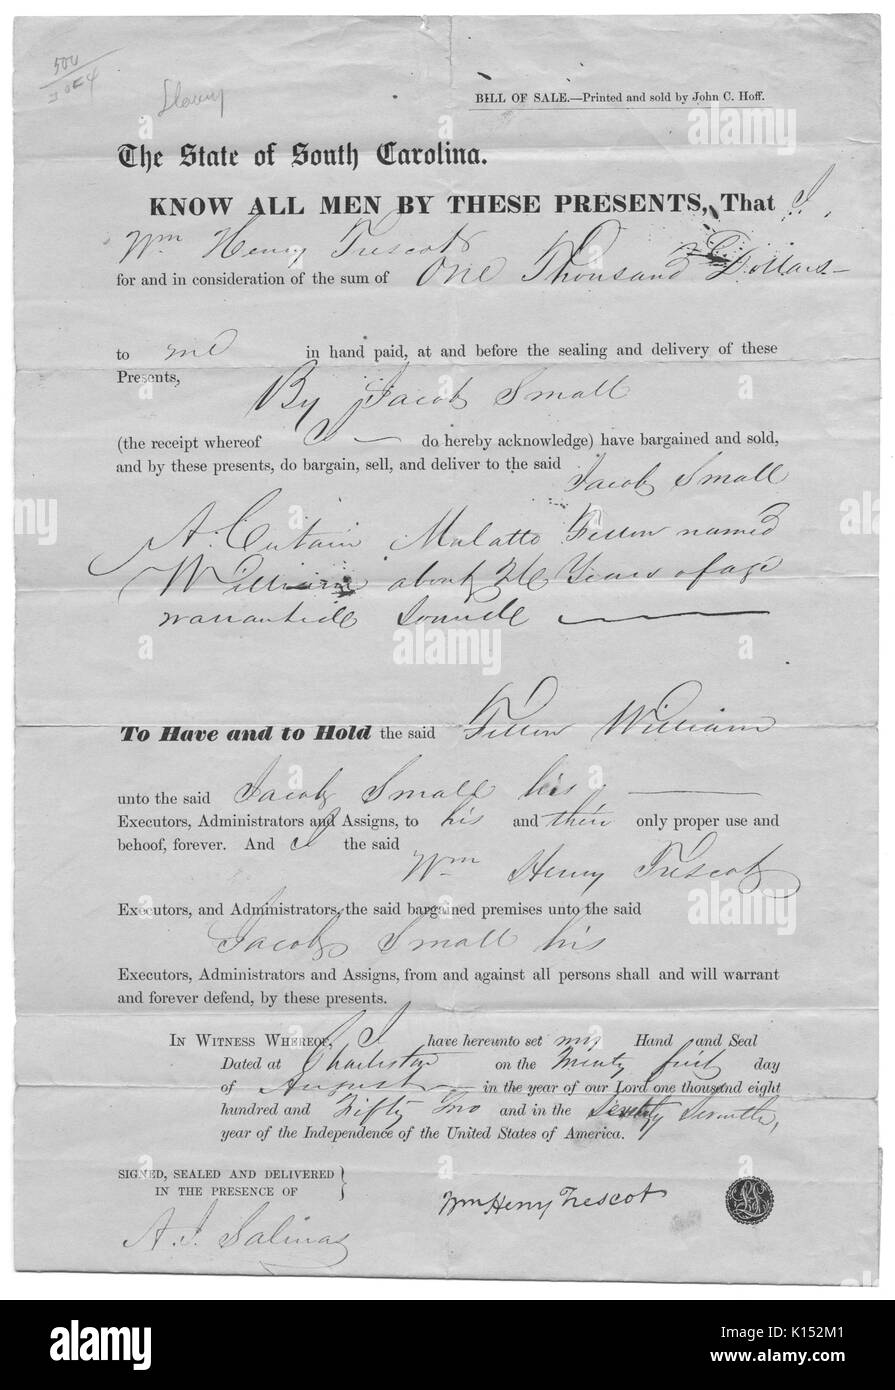 A bill of sale for a slave, consisting of a form letter with hand written sections to complete the form, sale was for $1000 in the state of South Carolina, 1852. From the New York Public Library. - Stock Image